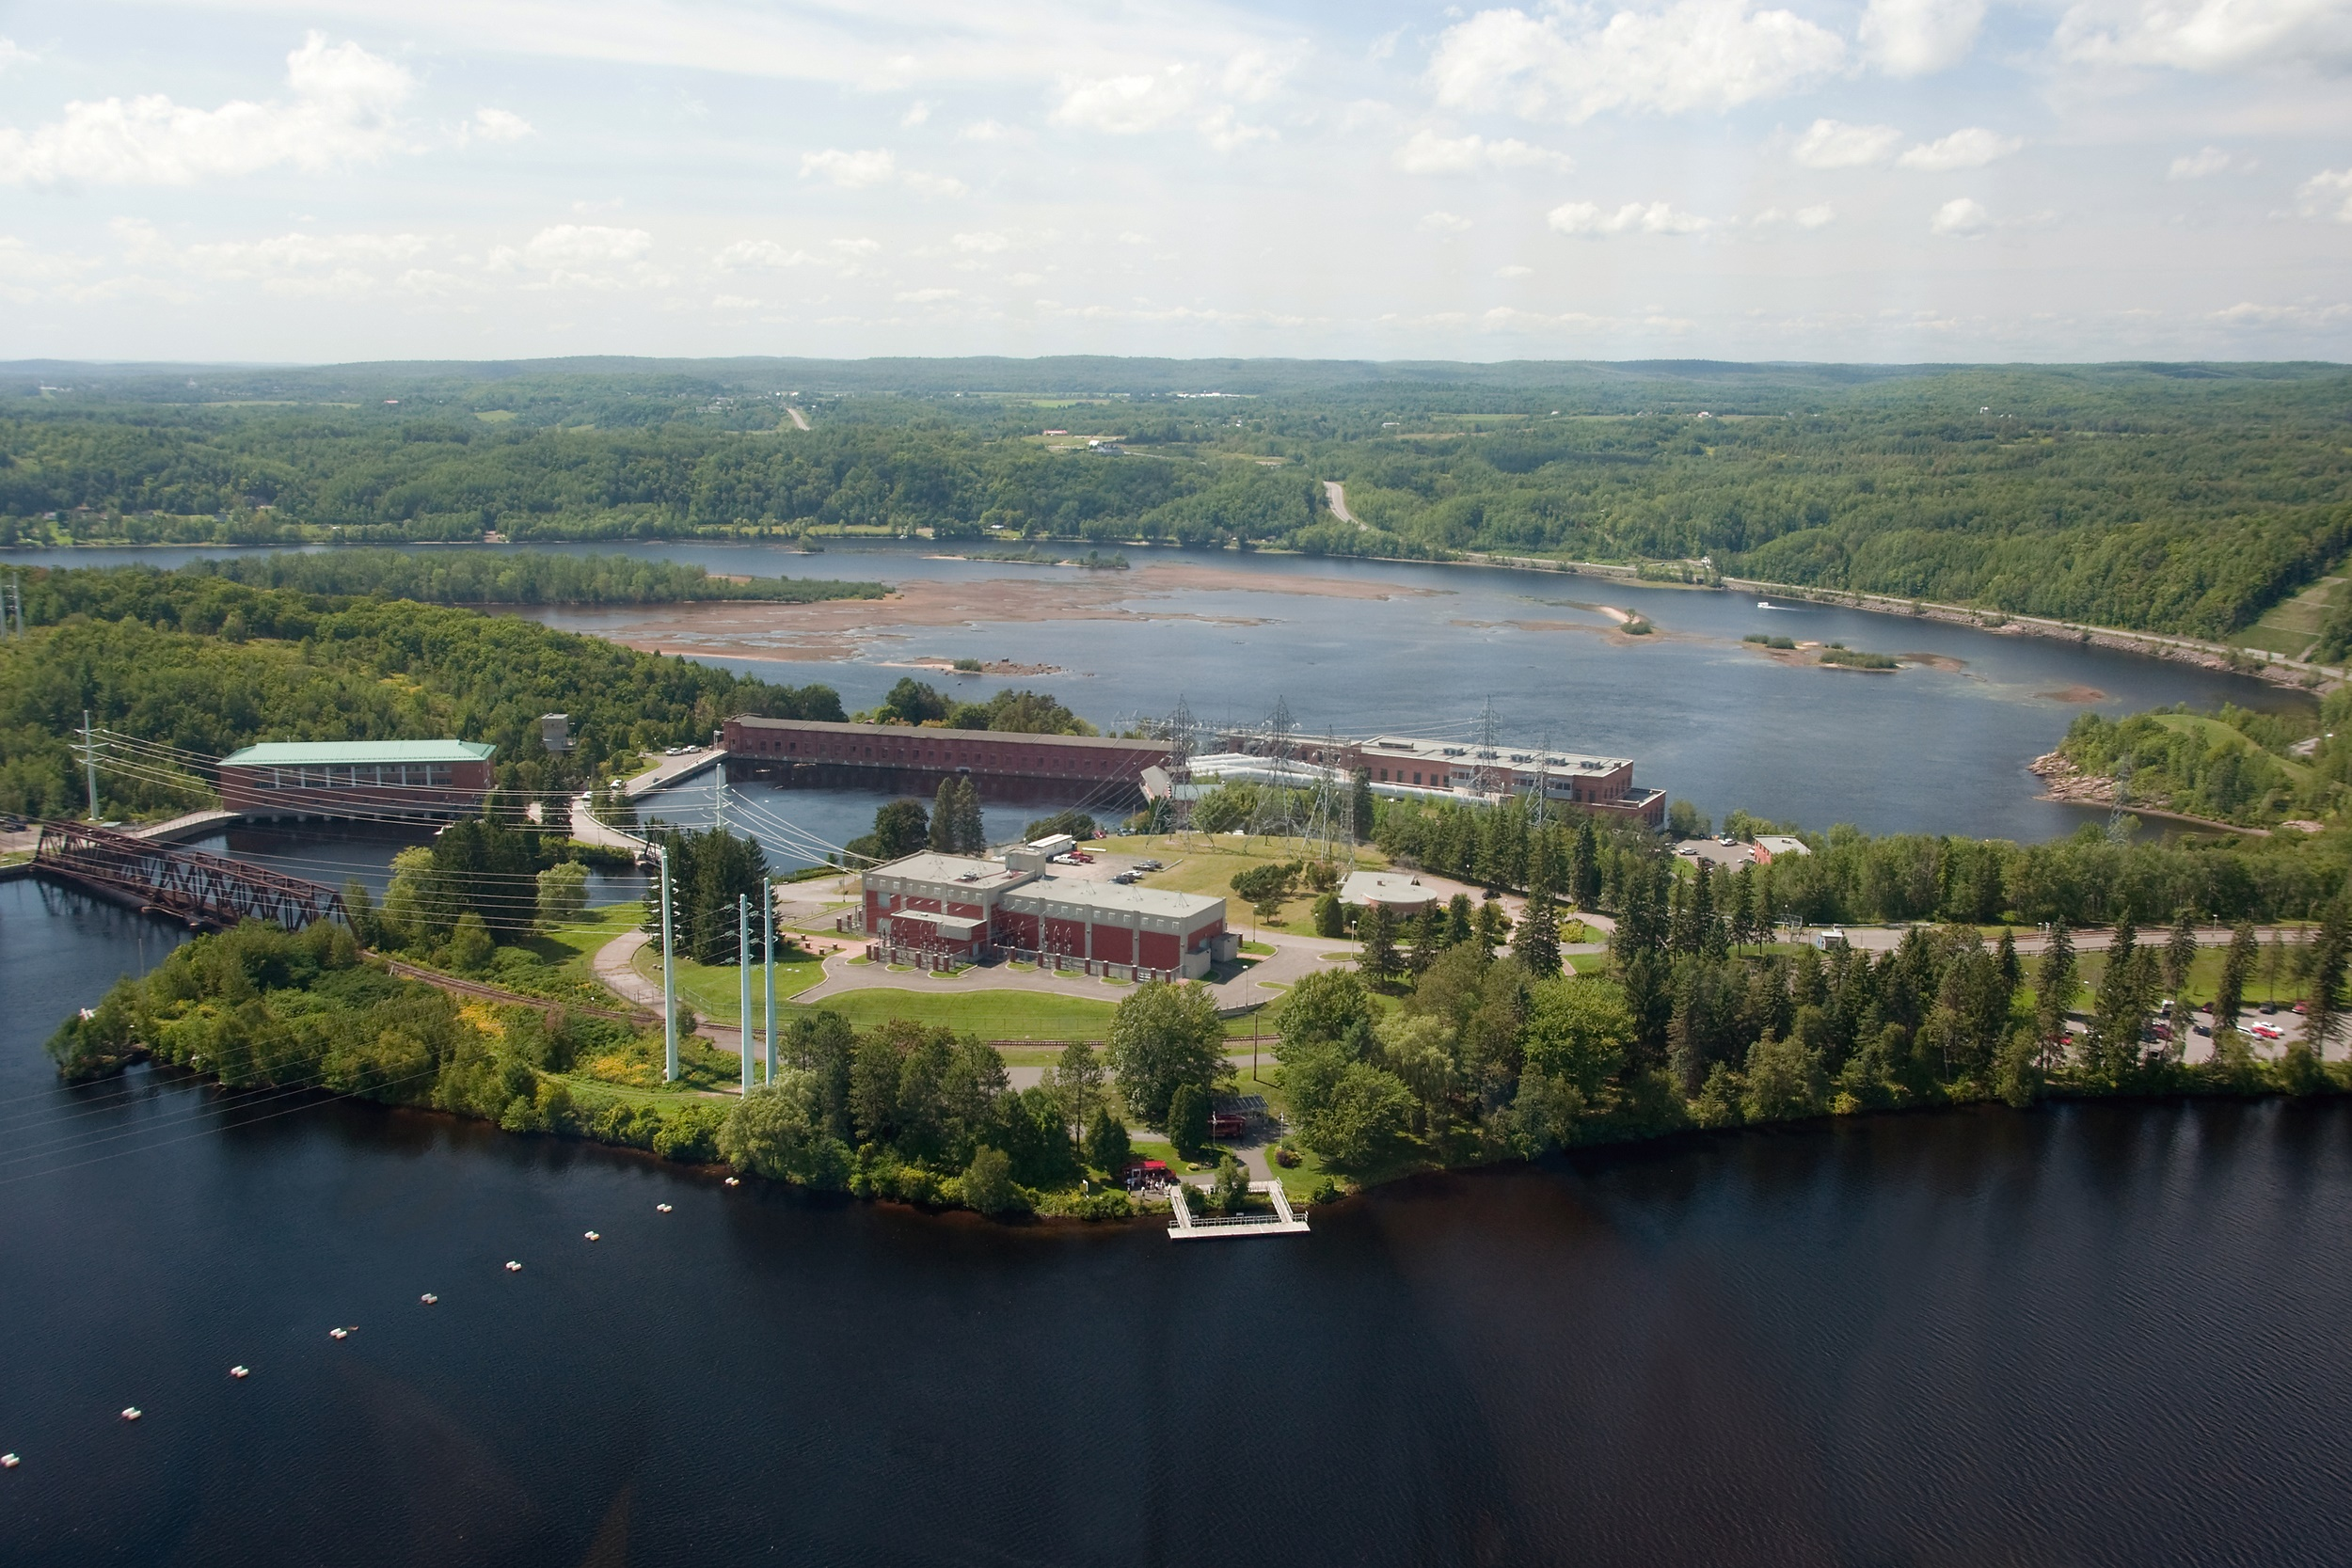 Shawinigan hydropower complex, in Quebec, has generated electricity for more than 100 years. The North American Clean Energy Plan, announced on June 29, 2016, could boost Canadian hydropower production. Photo © Shutterstock